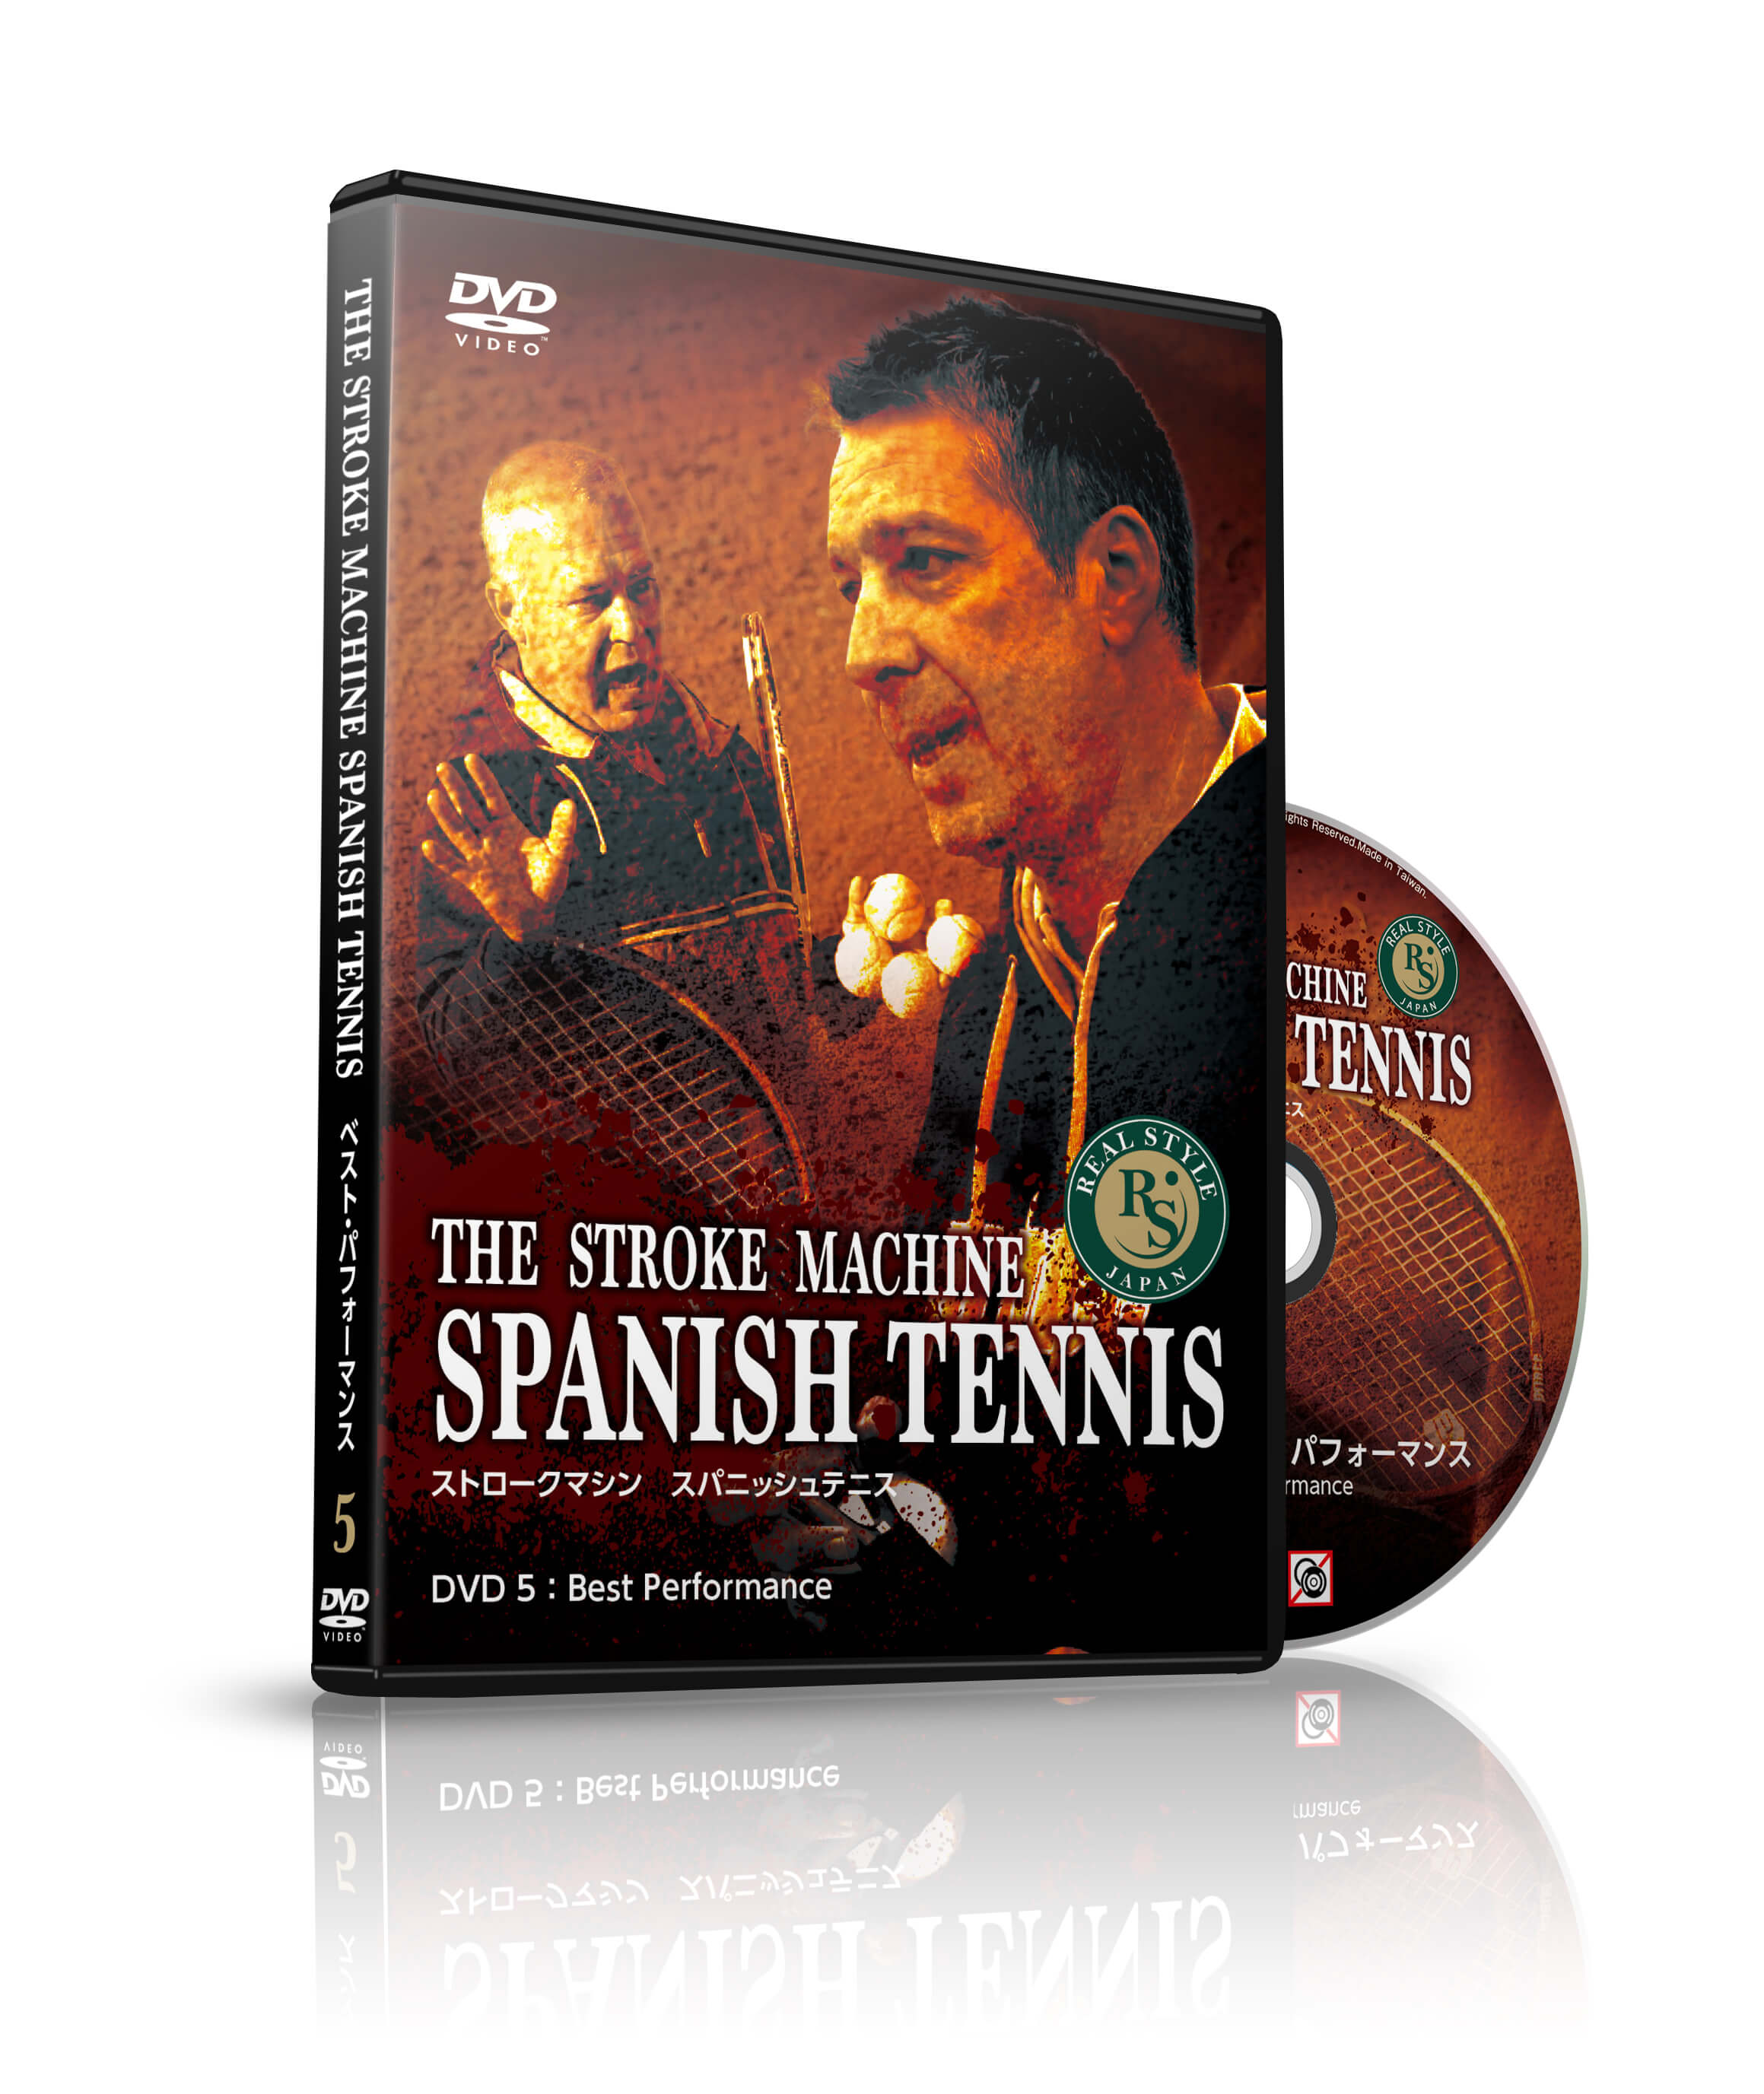 THE STROKE MACHINE SPANISH TENNIS Disc5:ベストパフォーマンス